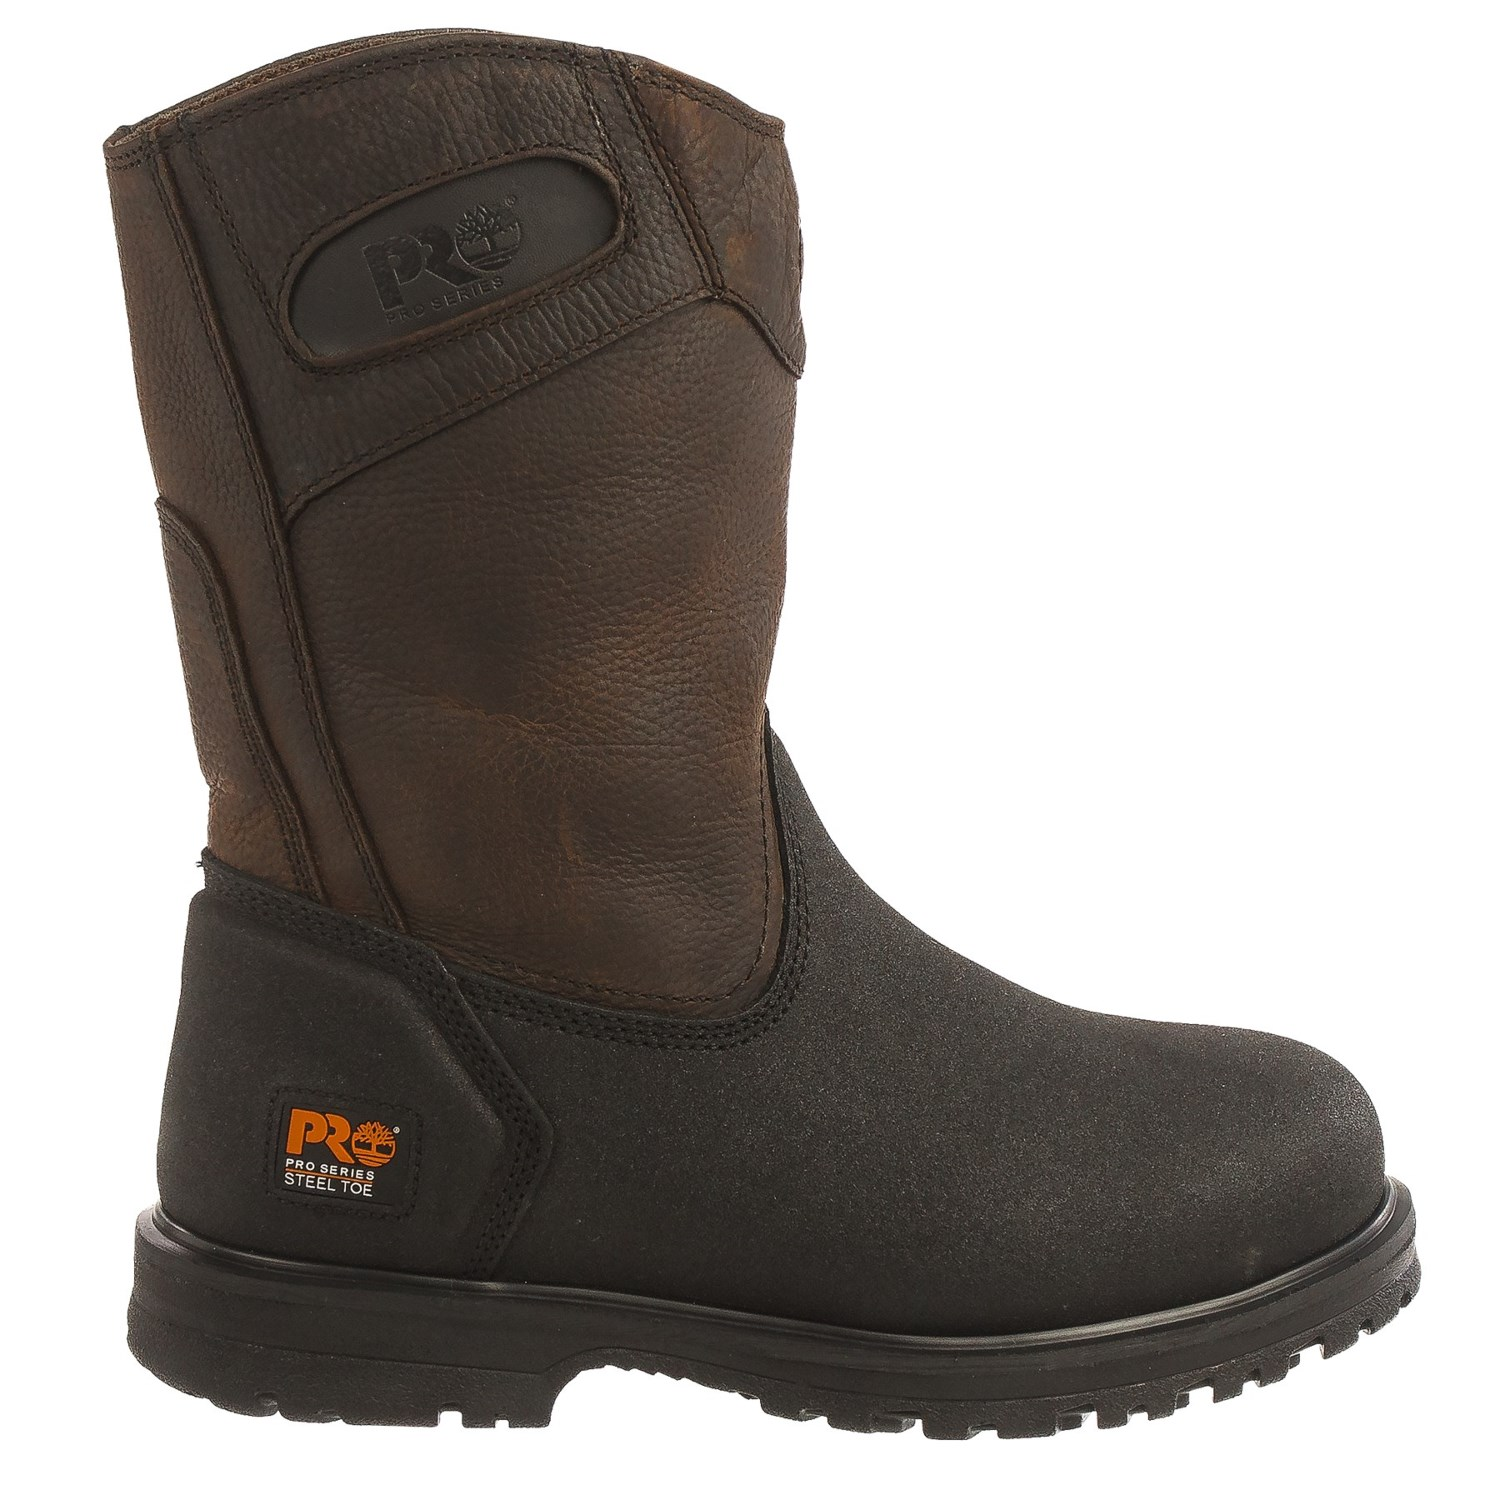 Timberland Pro Series Powerwelt Wellington Work Boots For